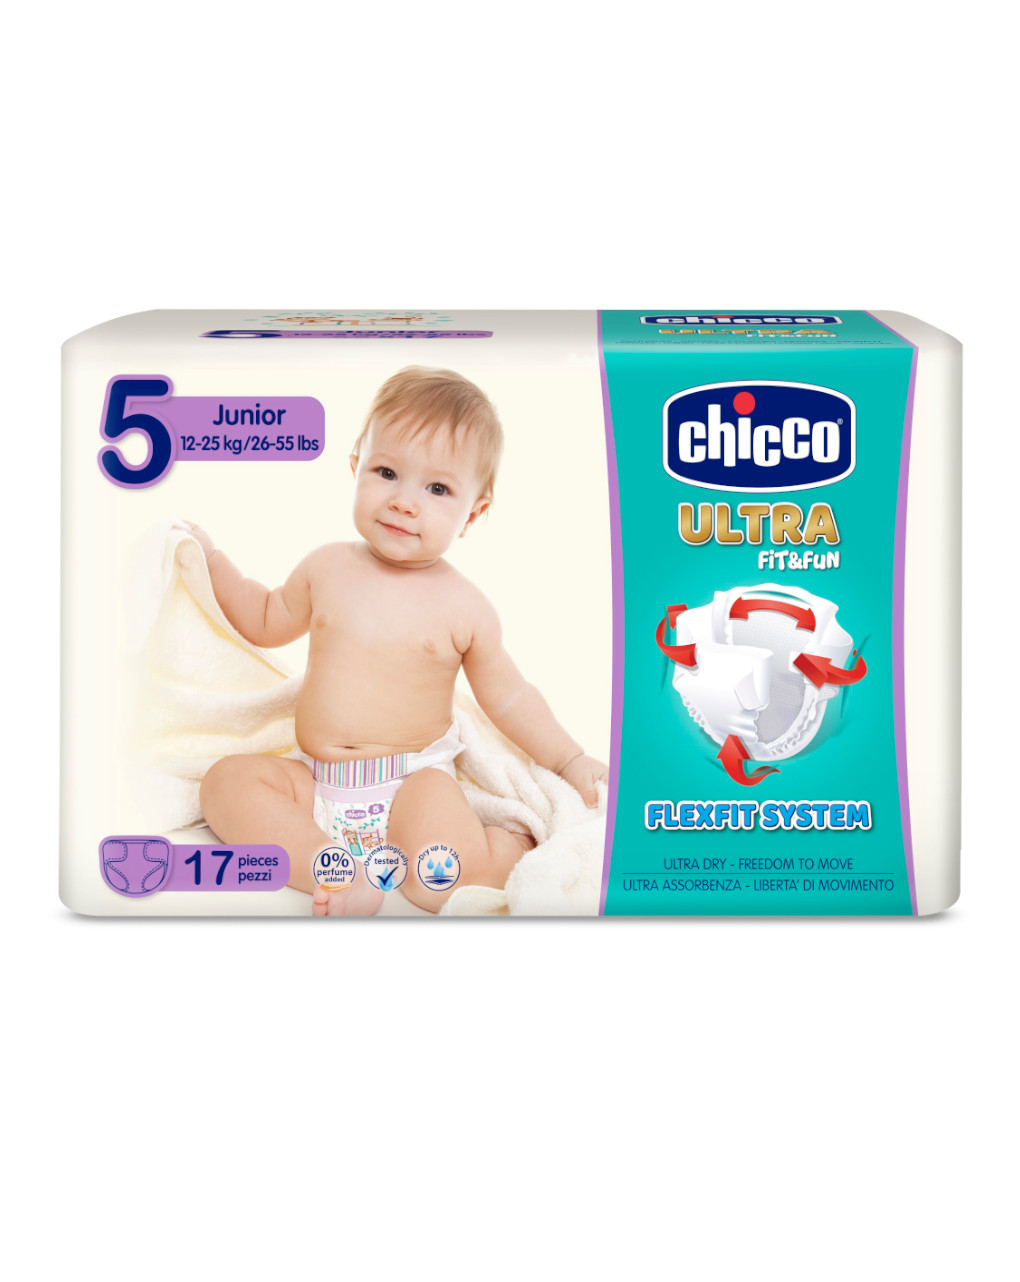 Chicco - pannolini ultra soft tg. 5 (12-25 kg) - pacco singolo 17 pz - Chicco